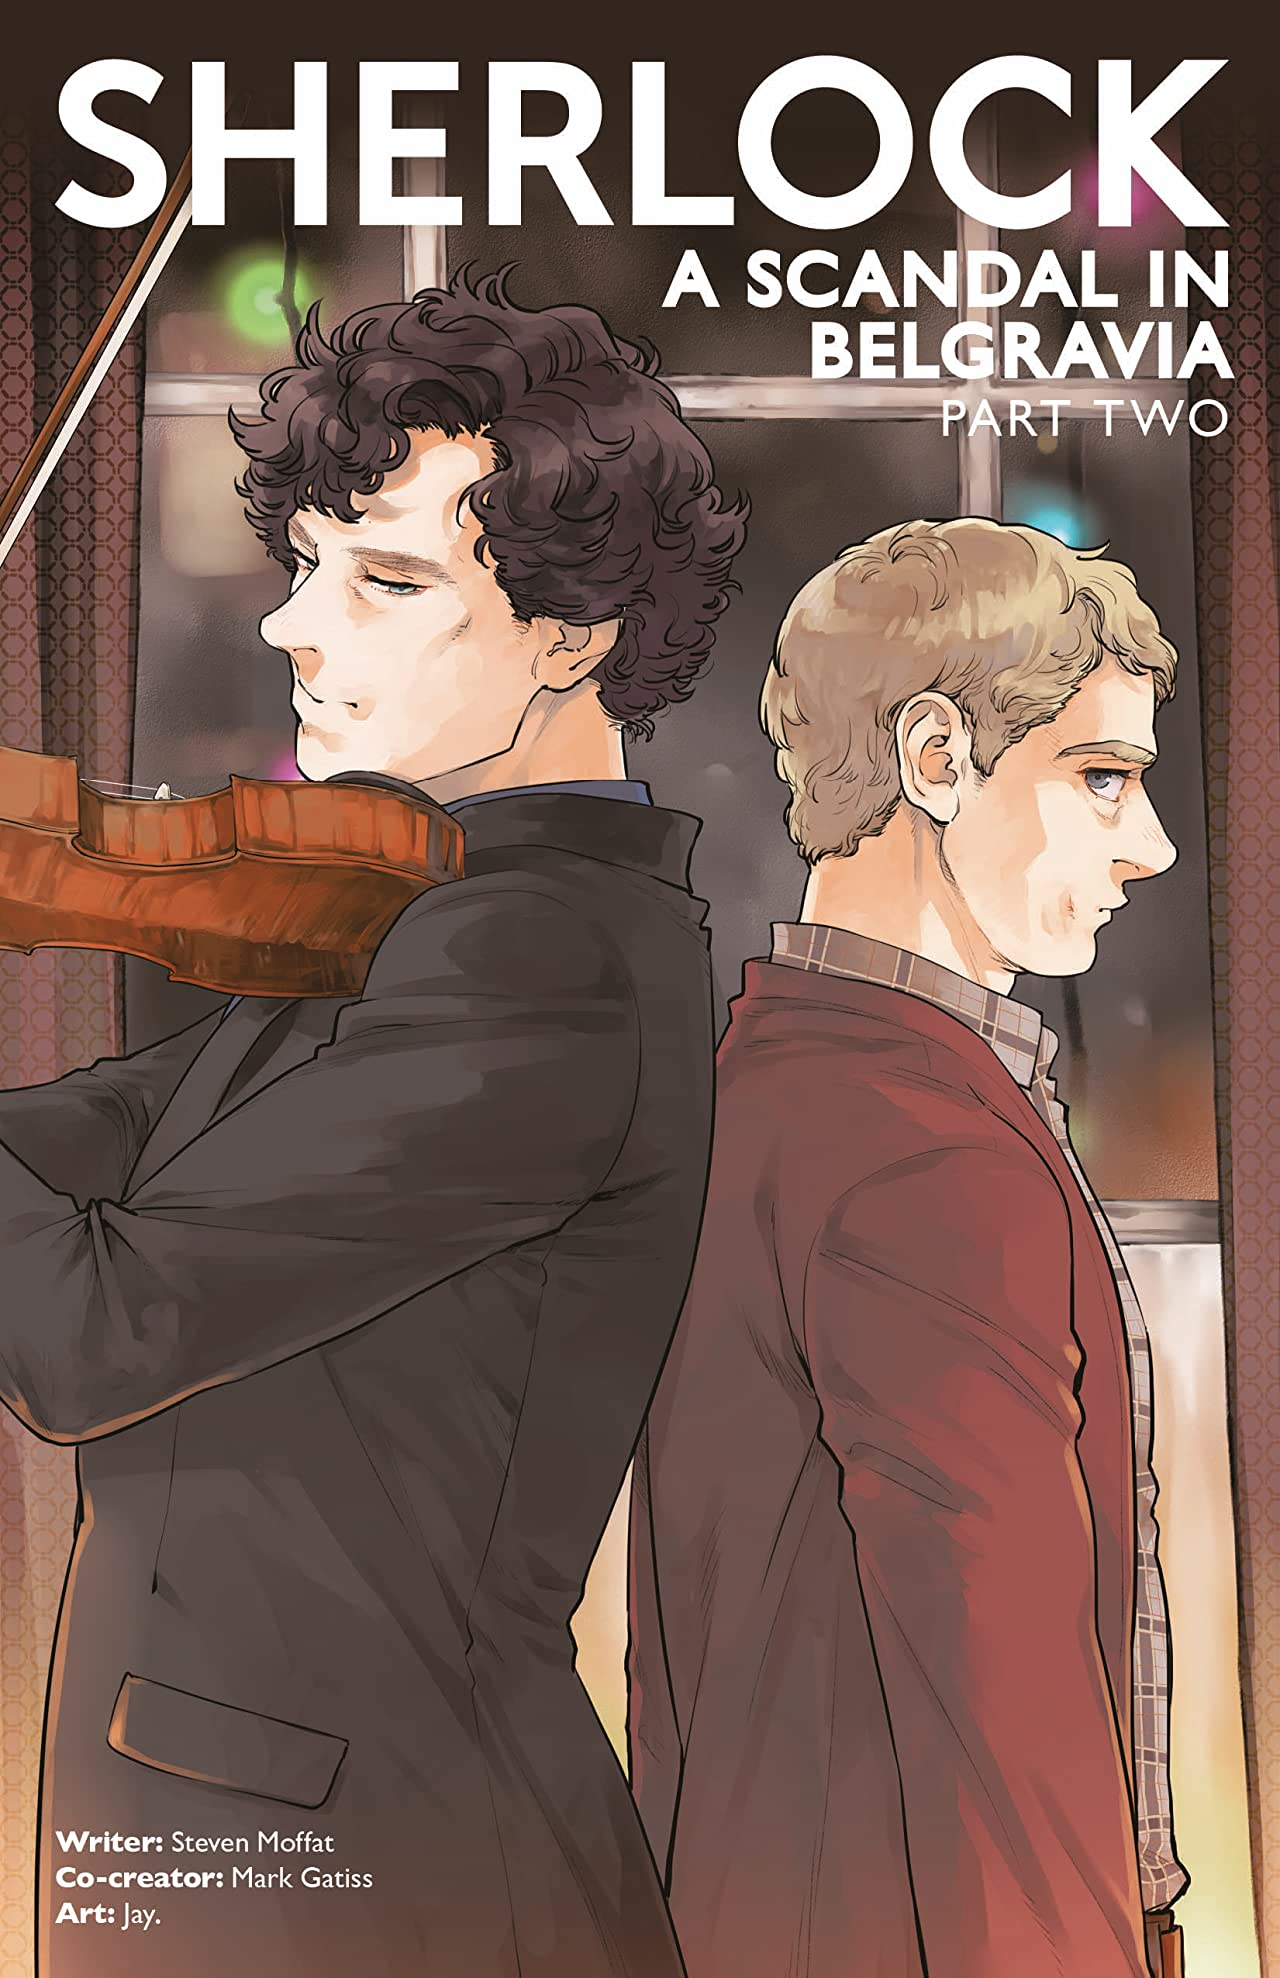 Sherlock Vol. 4.2: A Scandal in Belgravia